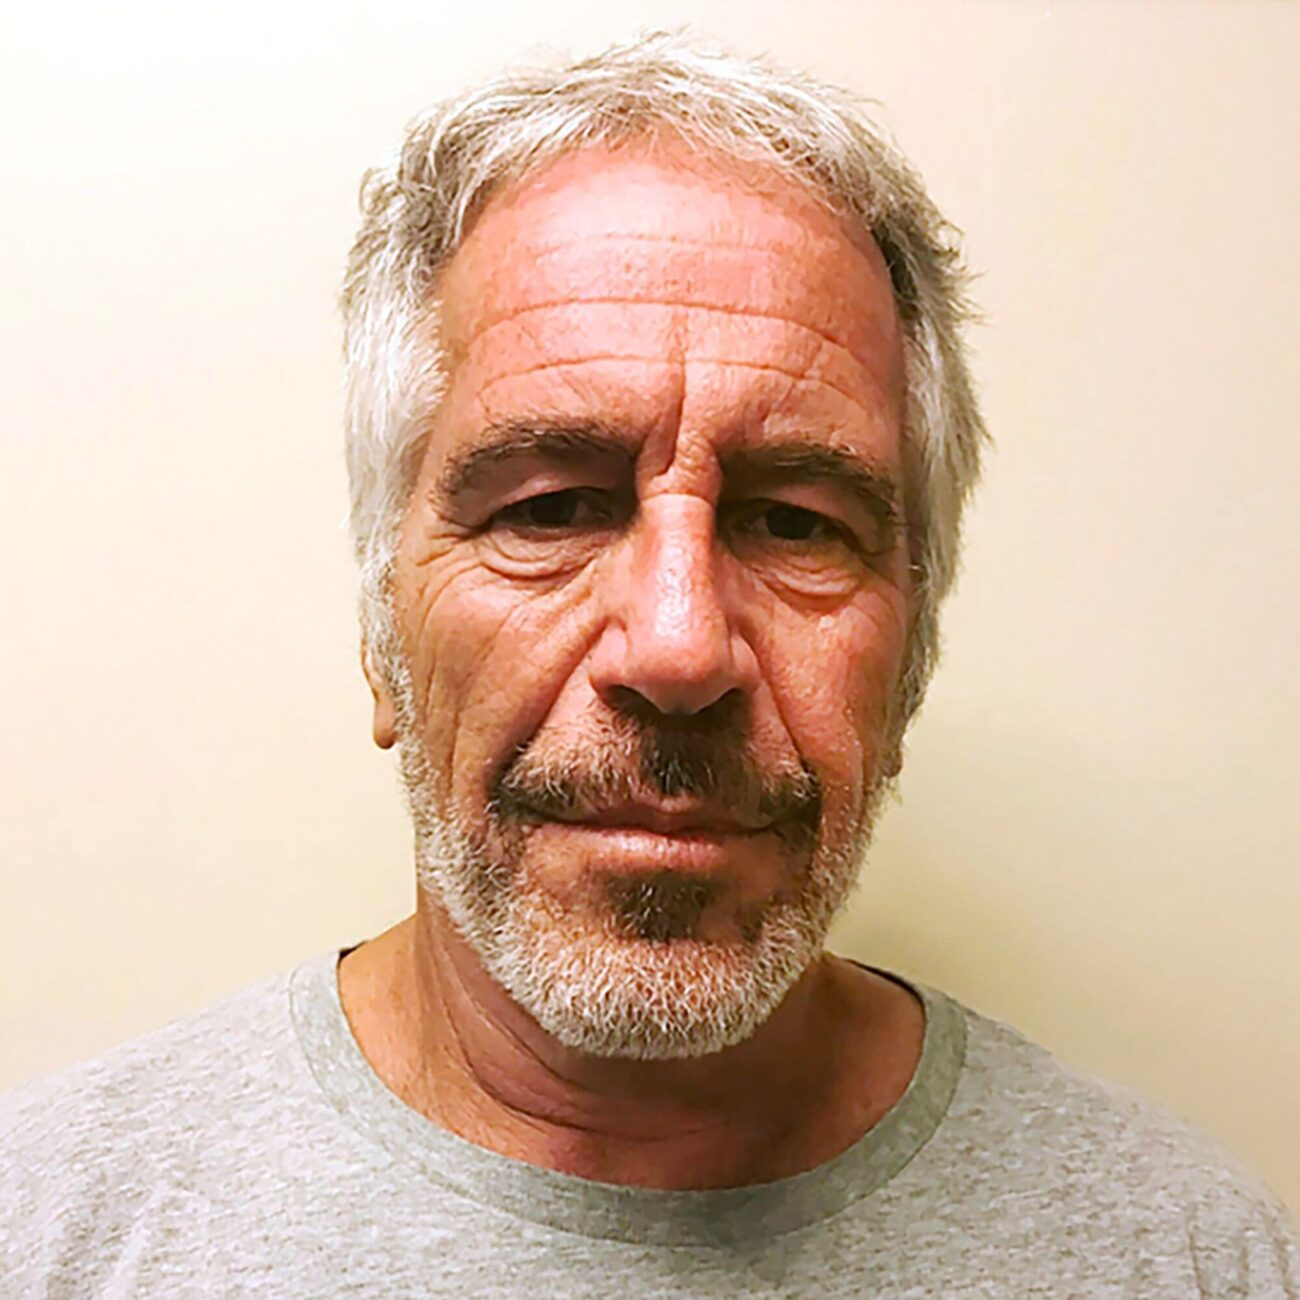 The strange circumstances that lead to Jeffery Epstein's death still haunt us. We're looking back at his suspicious death – what really happened that night?